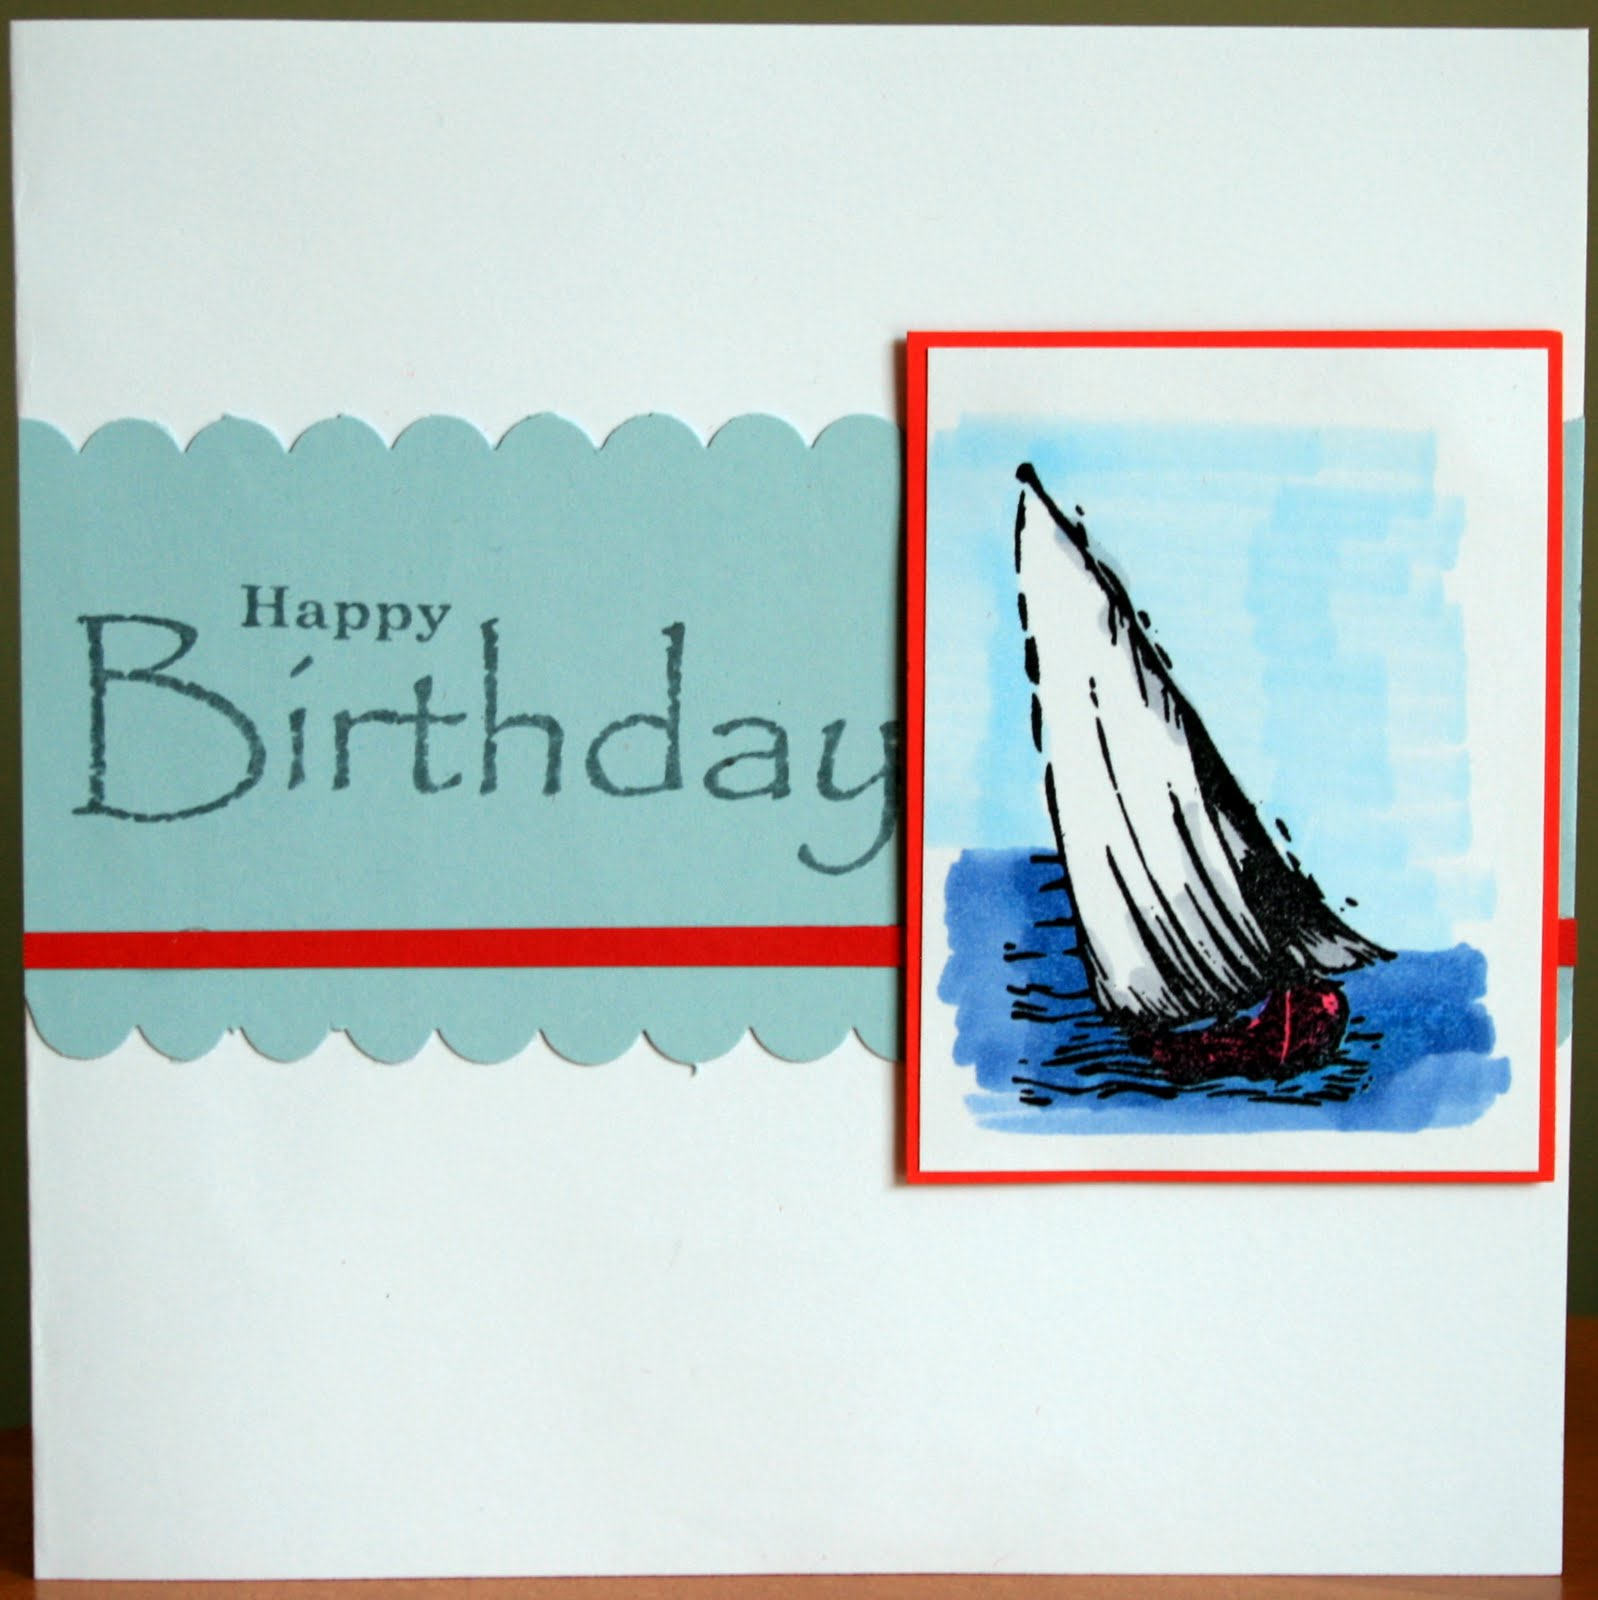 Birthday Cards For Men ~ Birthday cards for men